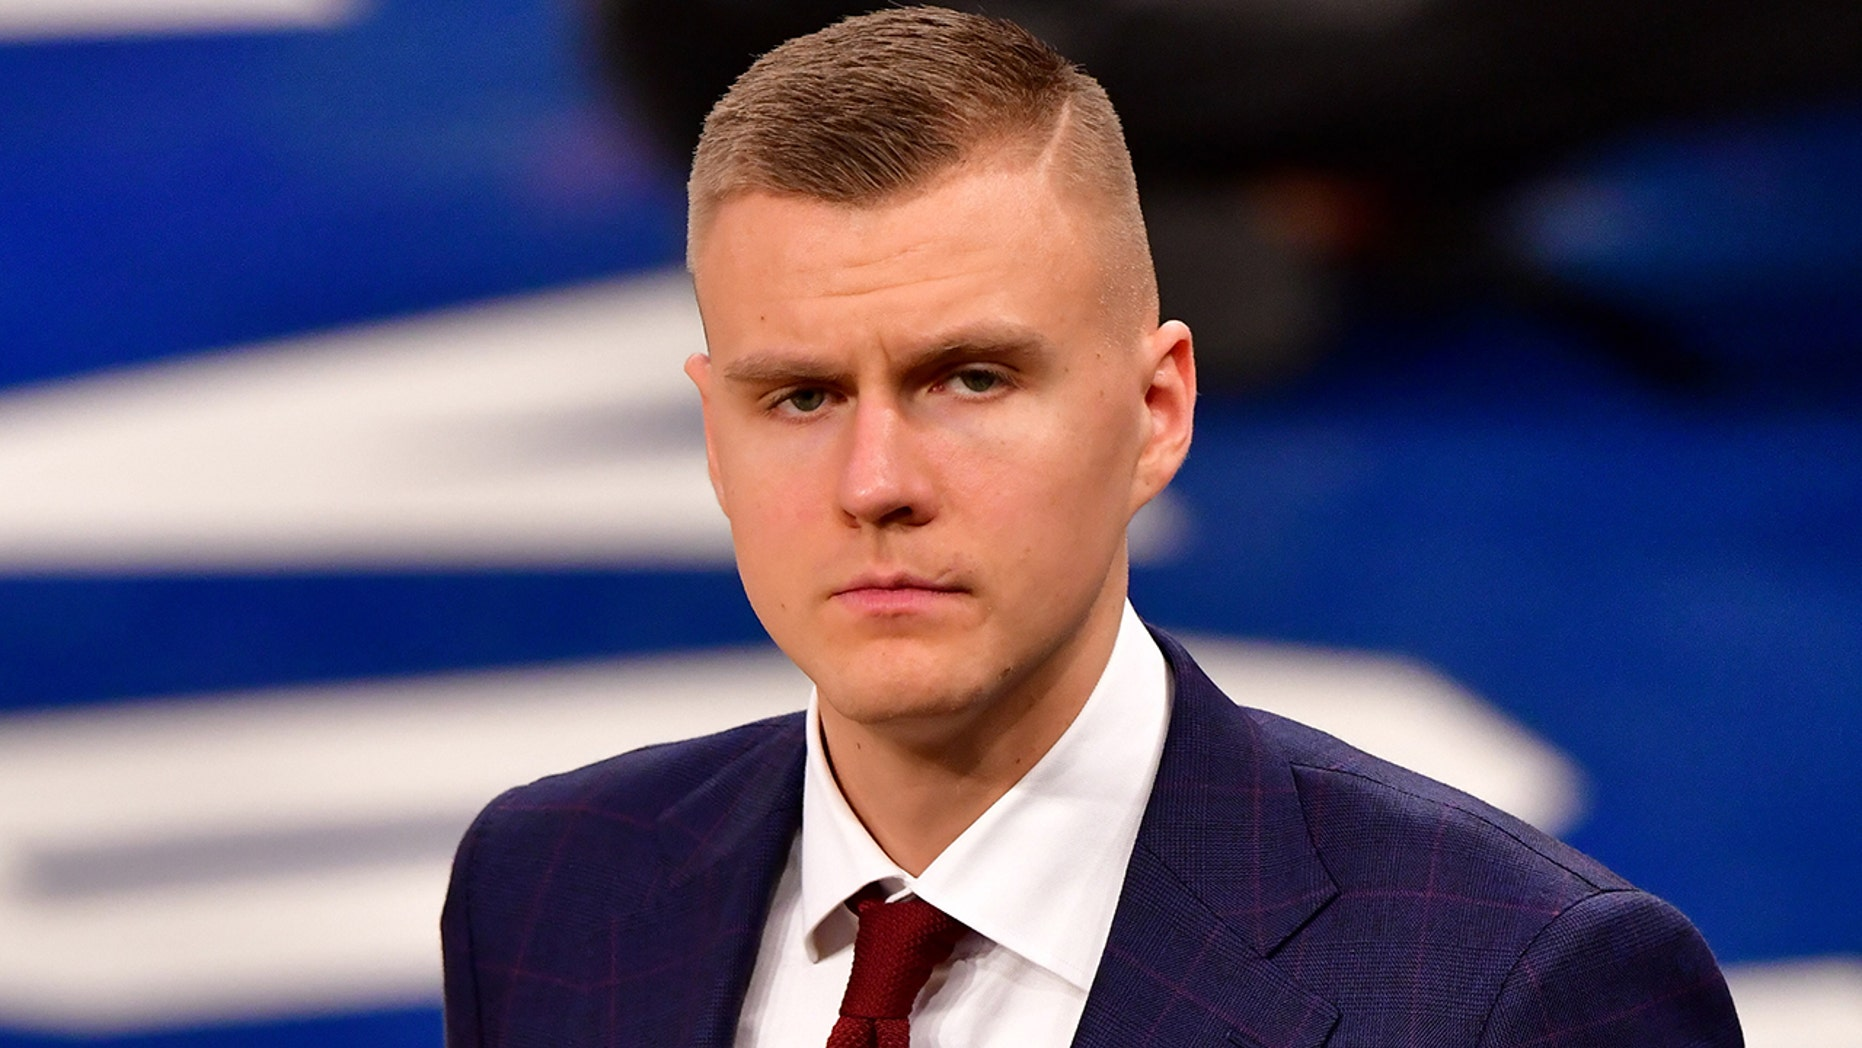 Kristaps Porzingis attends an Oklahoma City Thunder vs. New York Knicks game at Madison Square Garden on Jan. 21, 2019, in New York City. (Getty Images)